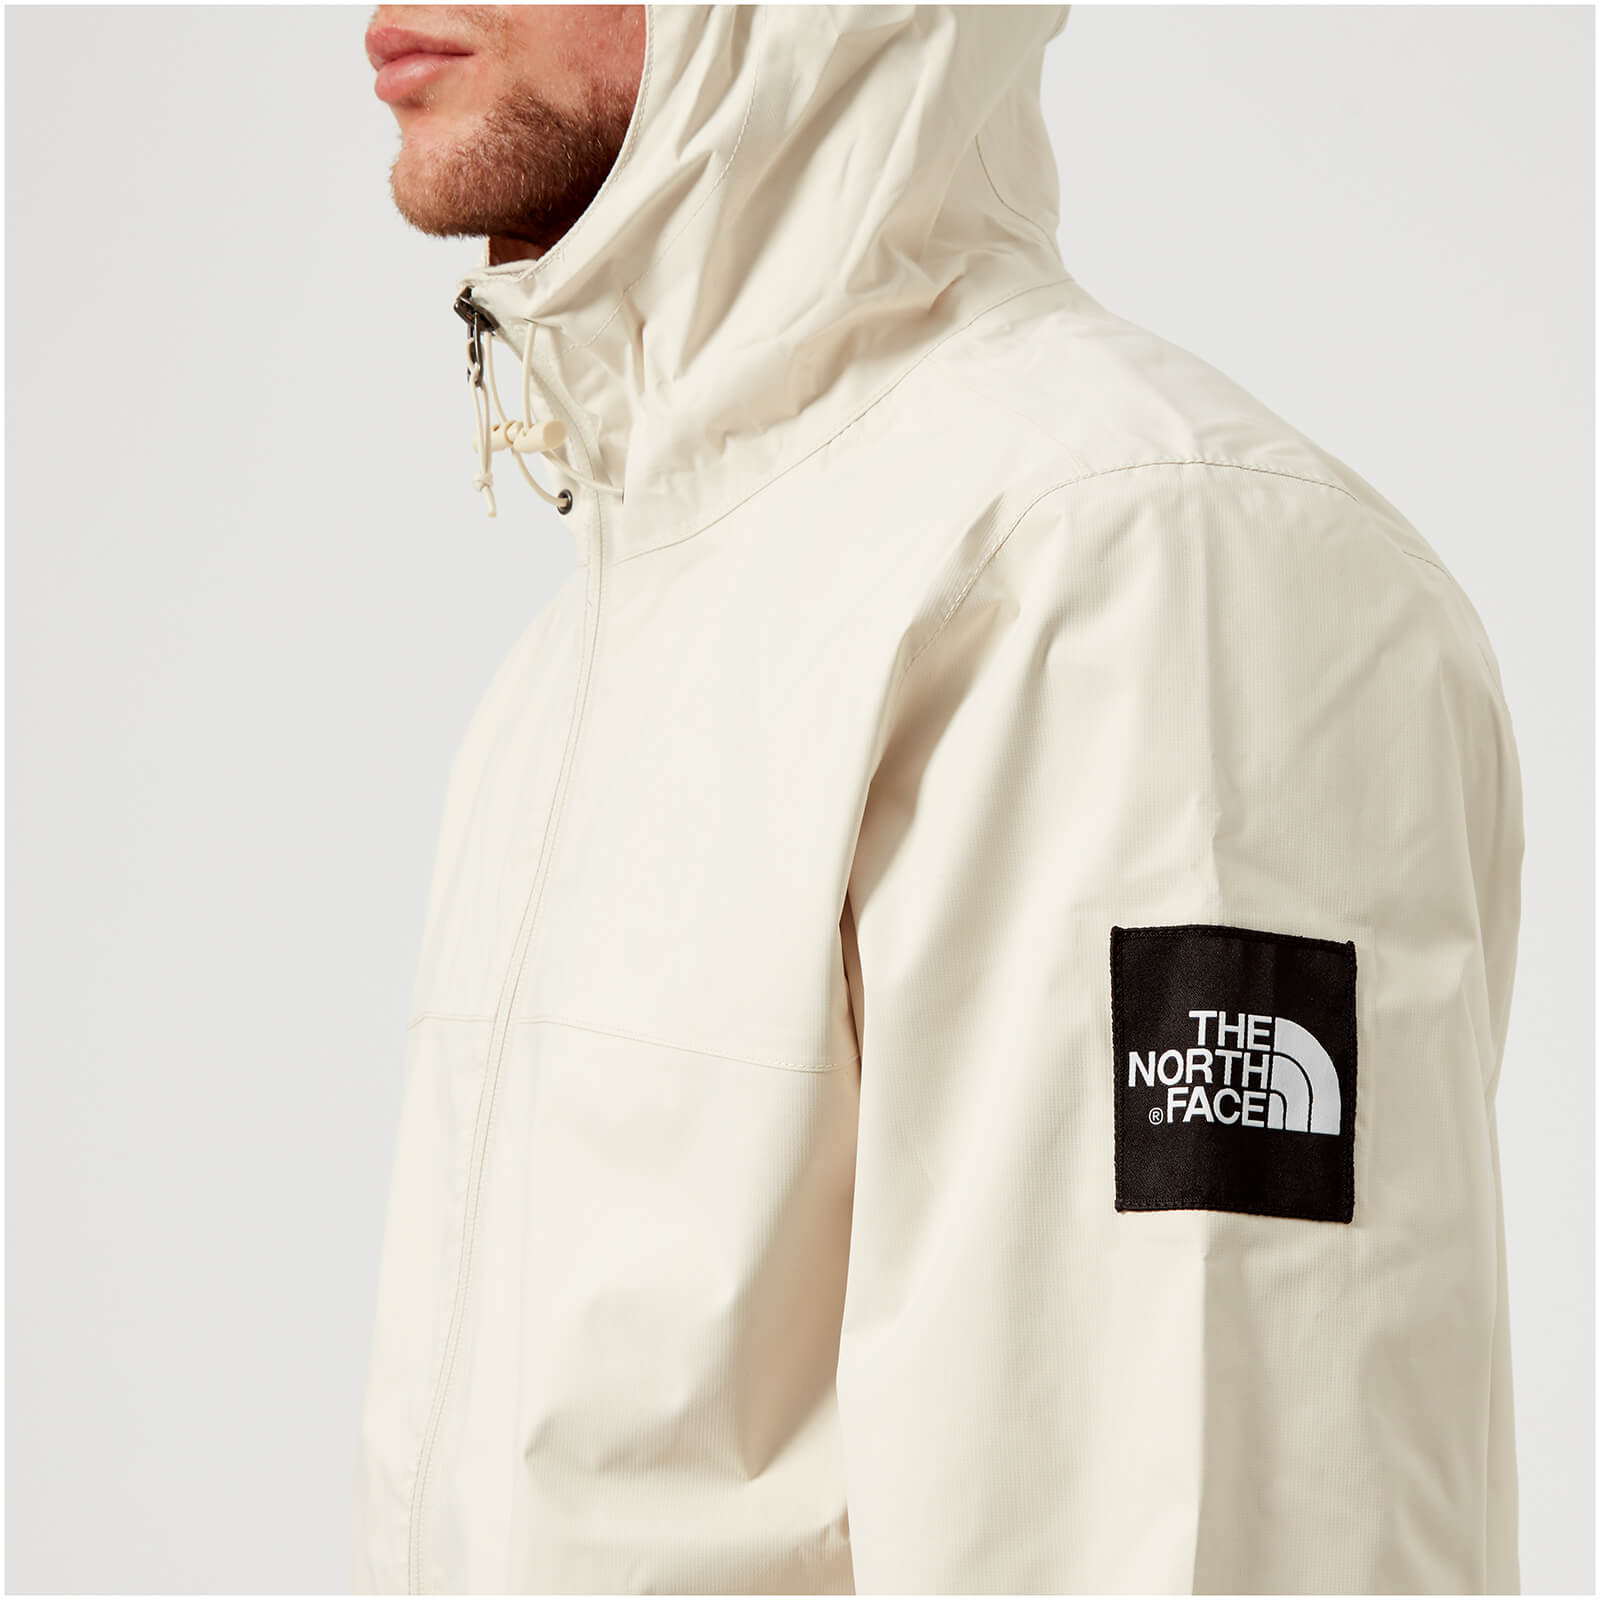 d3d2e9f37461 The North Face Men s Mountain Q Jacket - Vintage White - Free UK Delivery  over £50